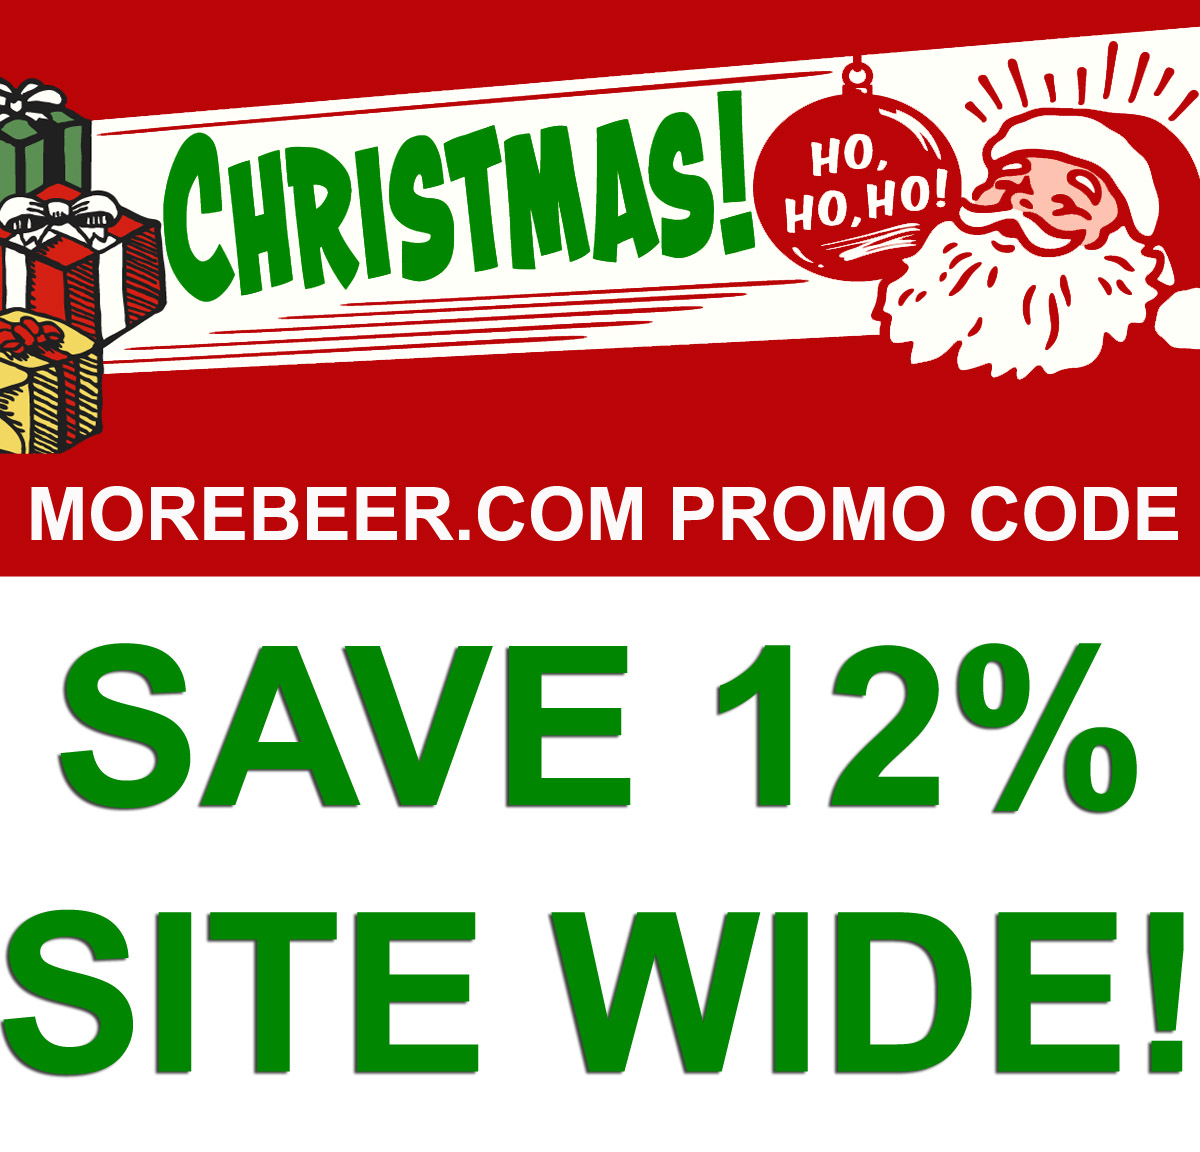 Coupon Code For Save 12% Site Wide At MoreBeer.com With Promo Code Coupon Code